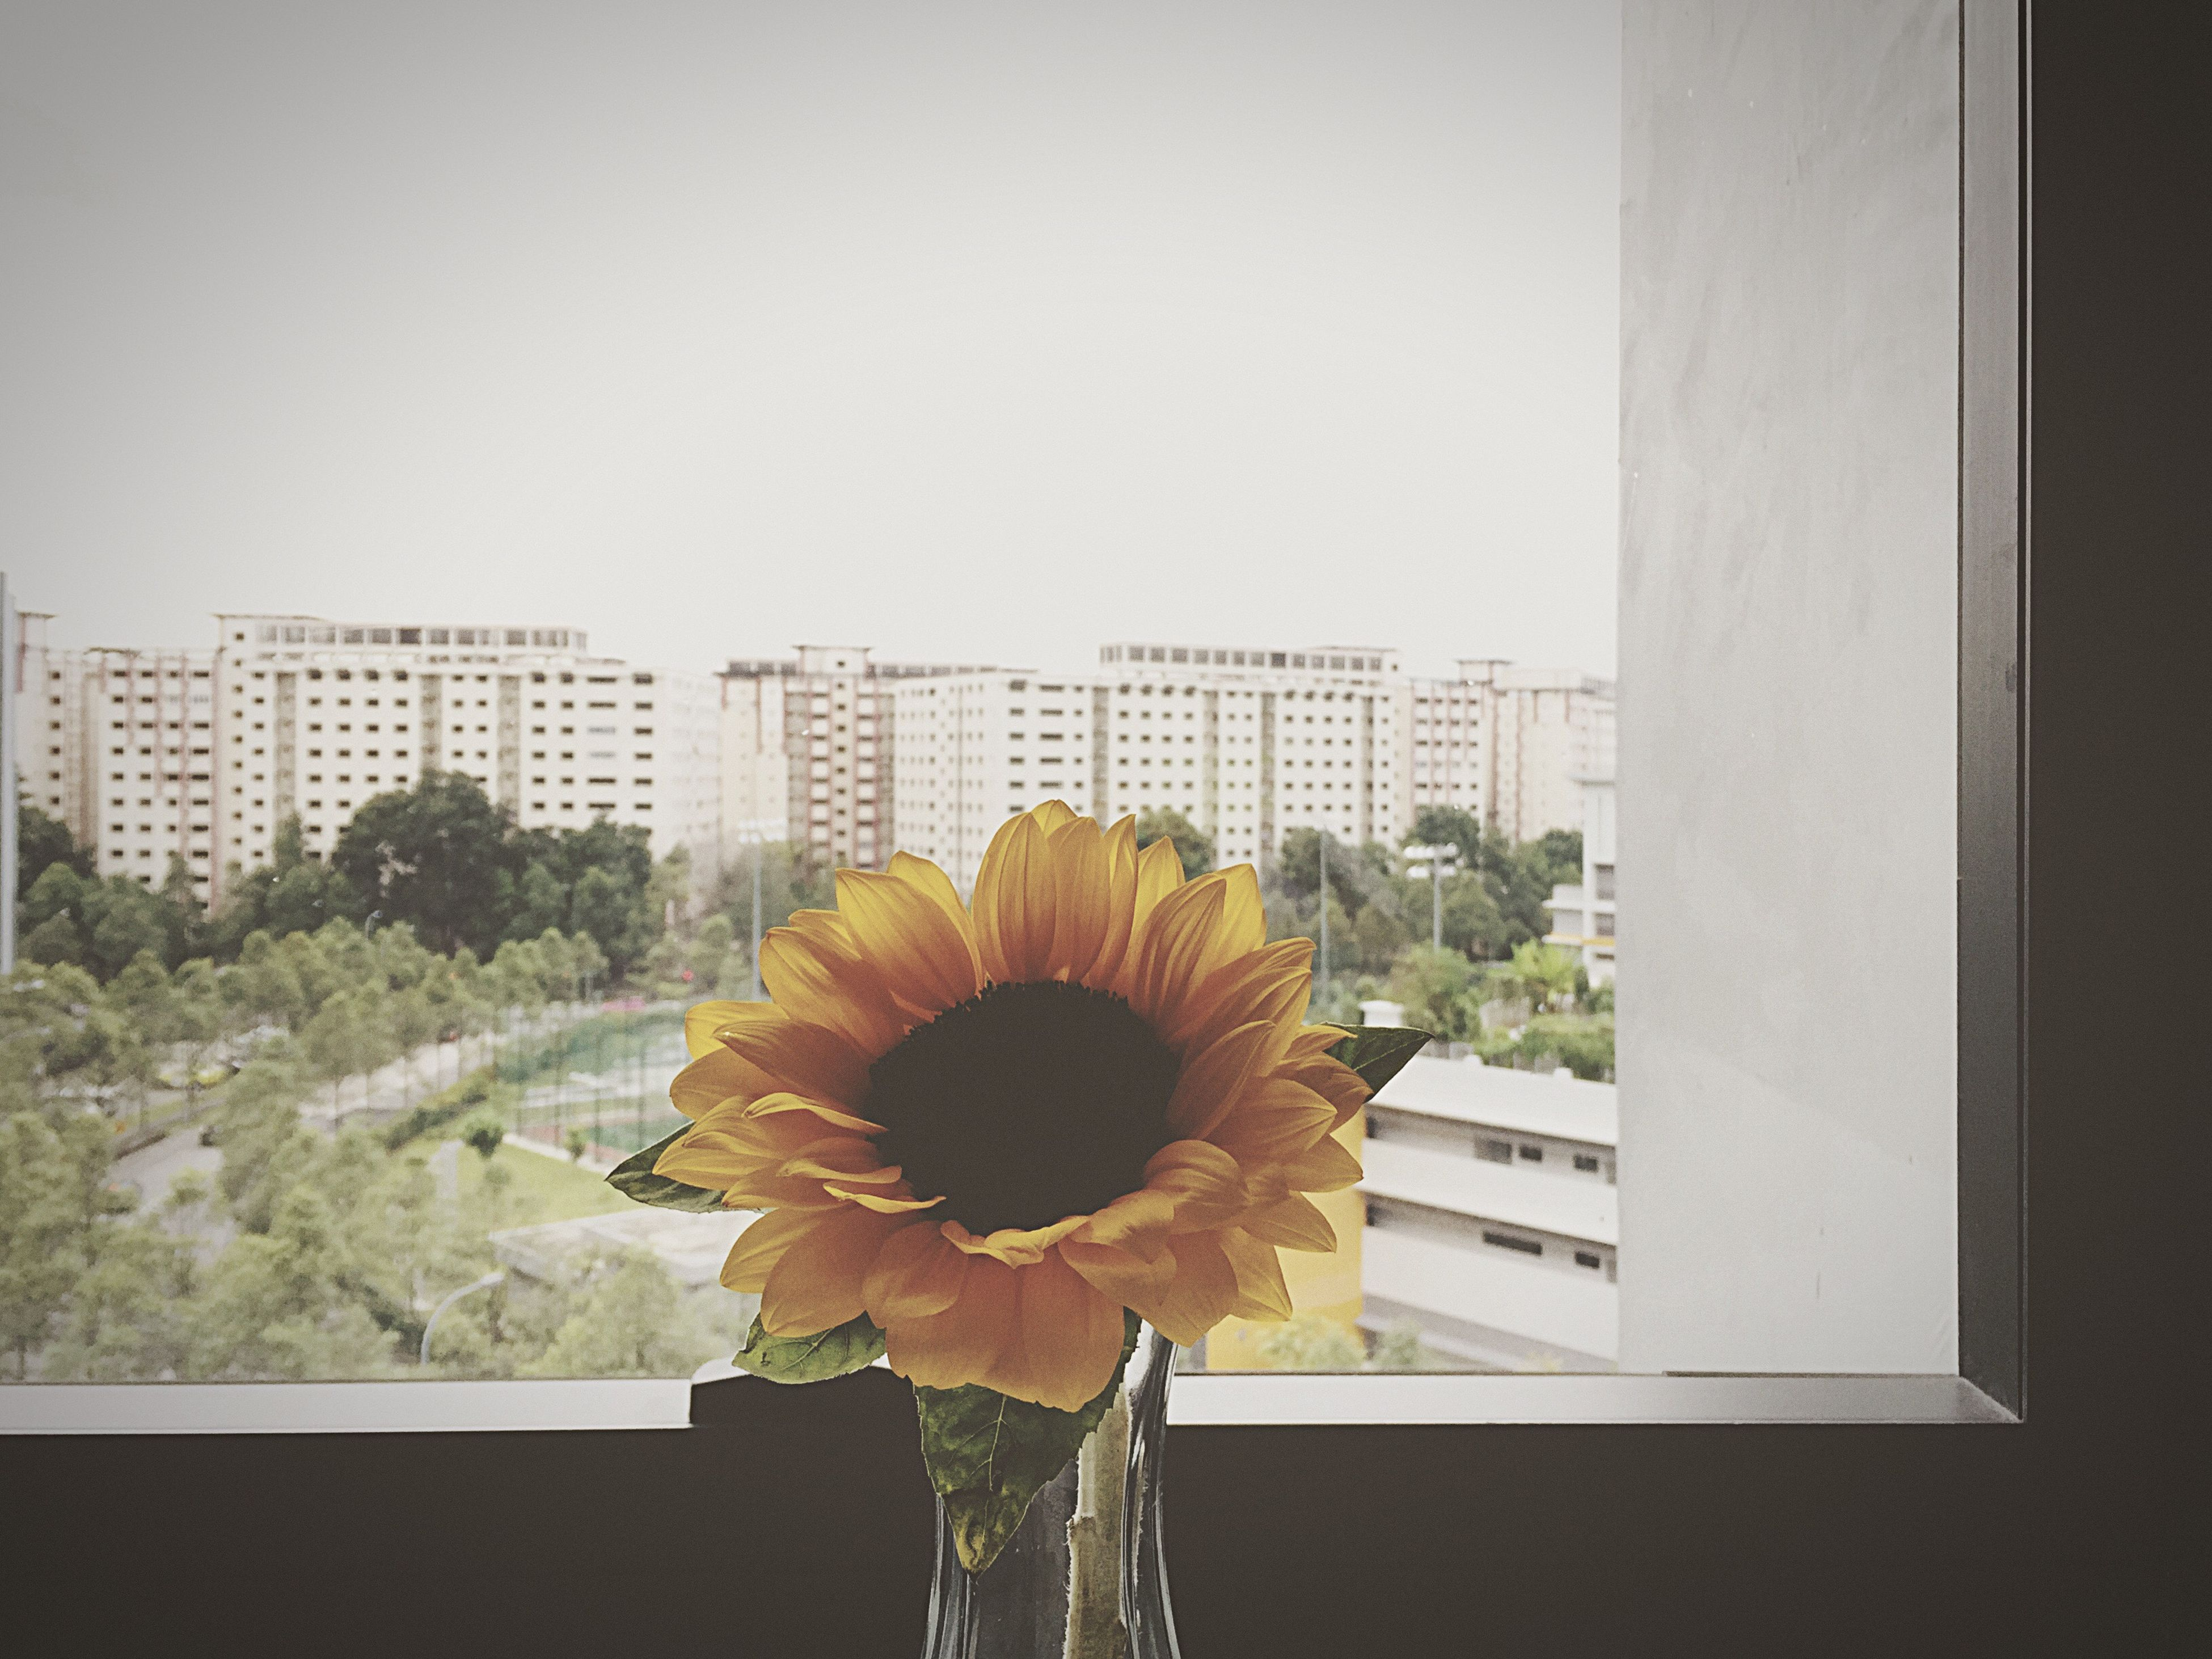 flower, architecture, built structure, building exterior, indoors, window, growth, freshness, plant, fragility, glass - material, city, flower head, potted plant, day, yellow, building, home interior, no people, petal